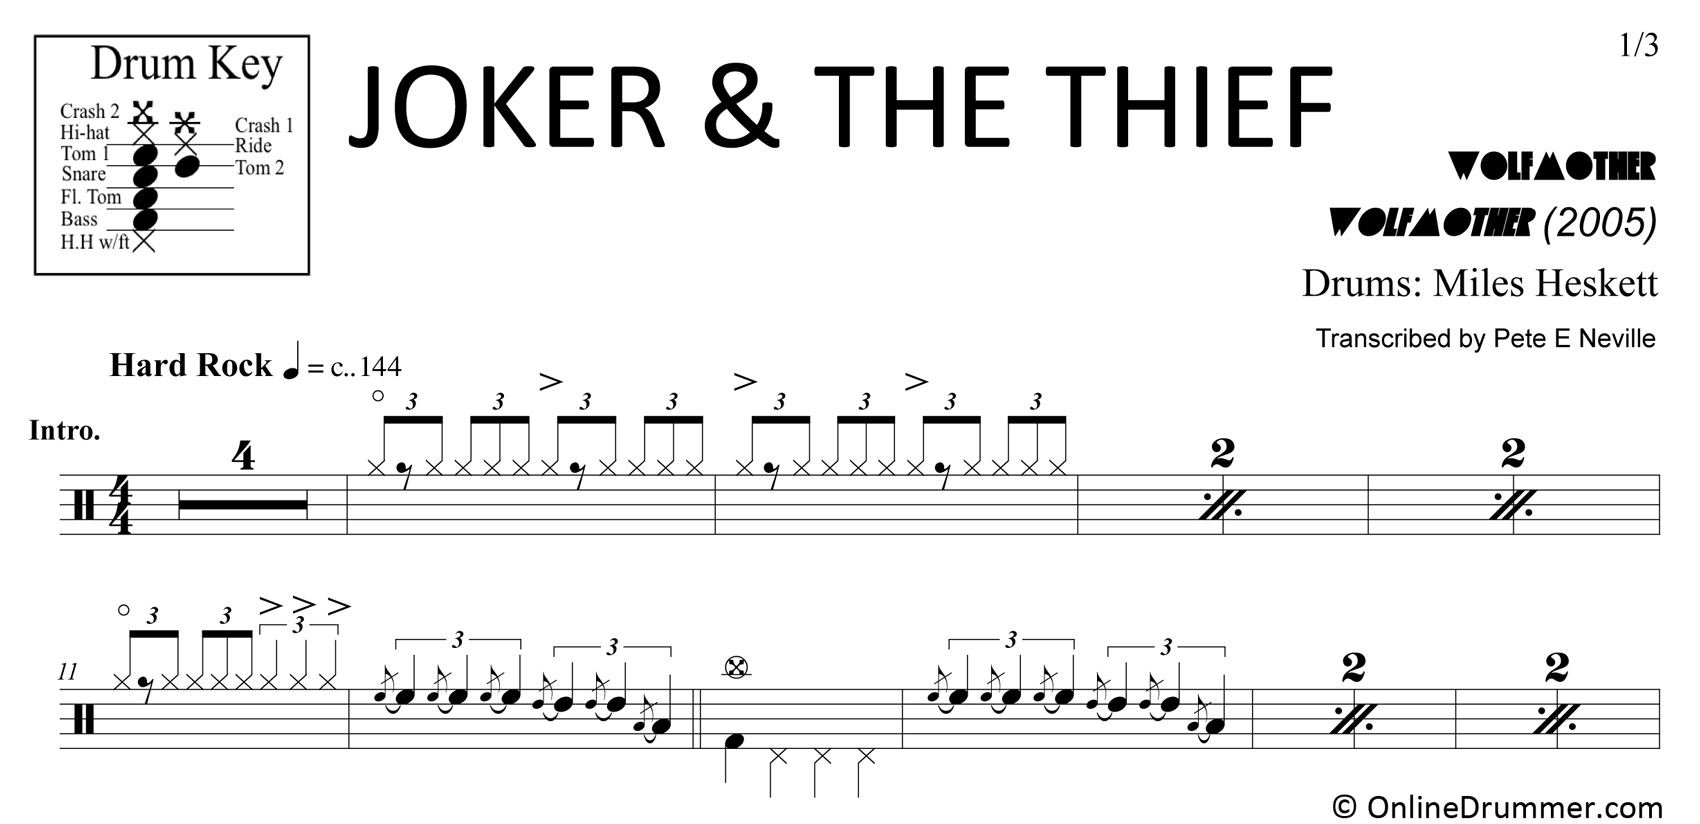 Joker & The Thief - Wolfmother - Drum Sheet Music